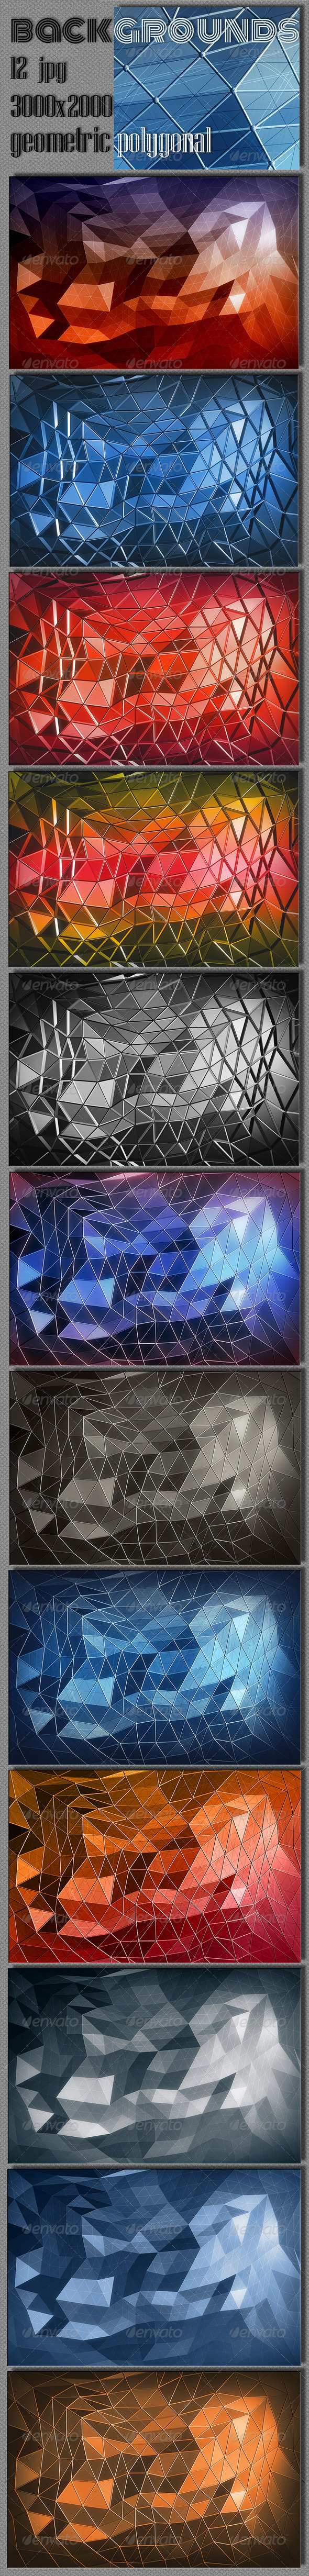 GraphicRiver Polygonal Geometric Backgrounds 6753533